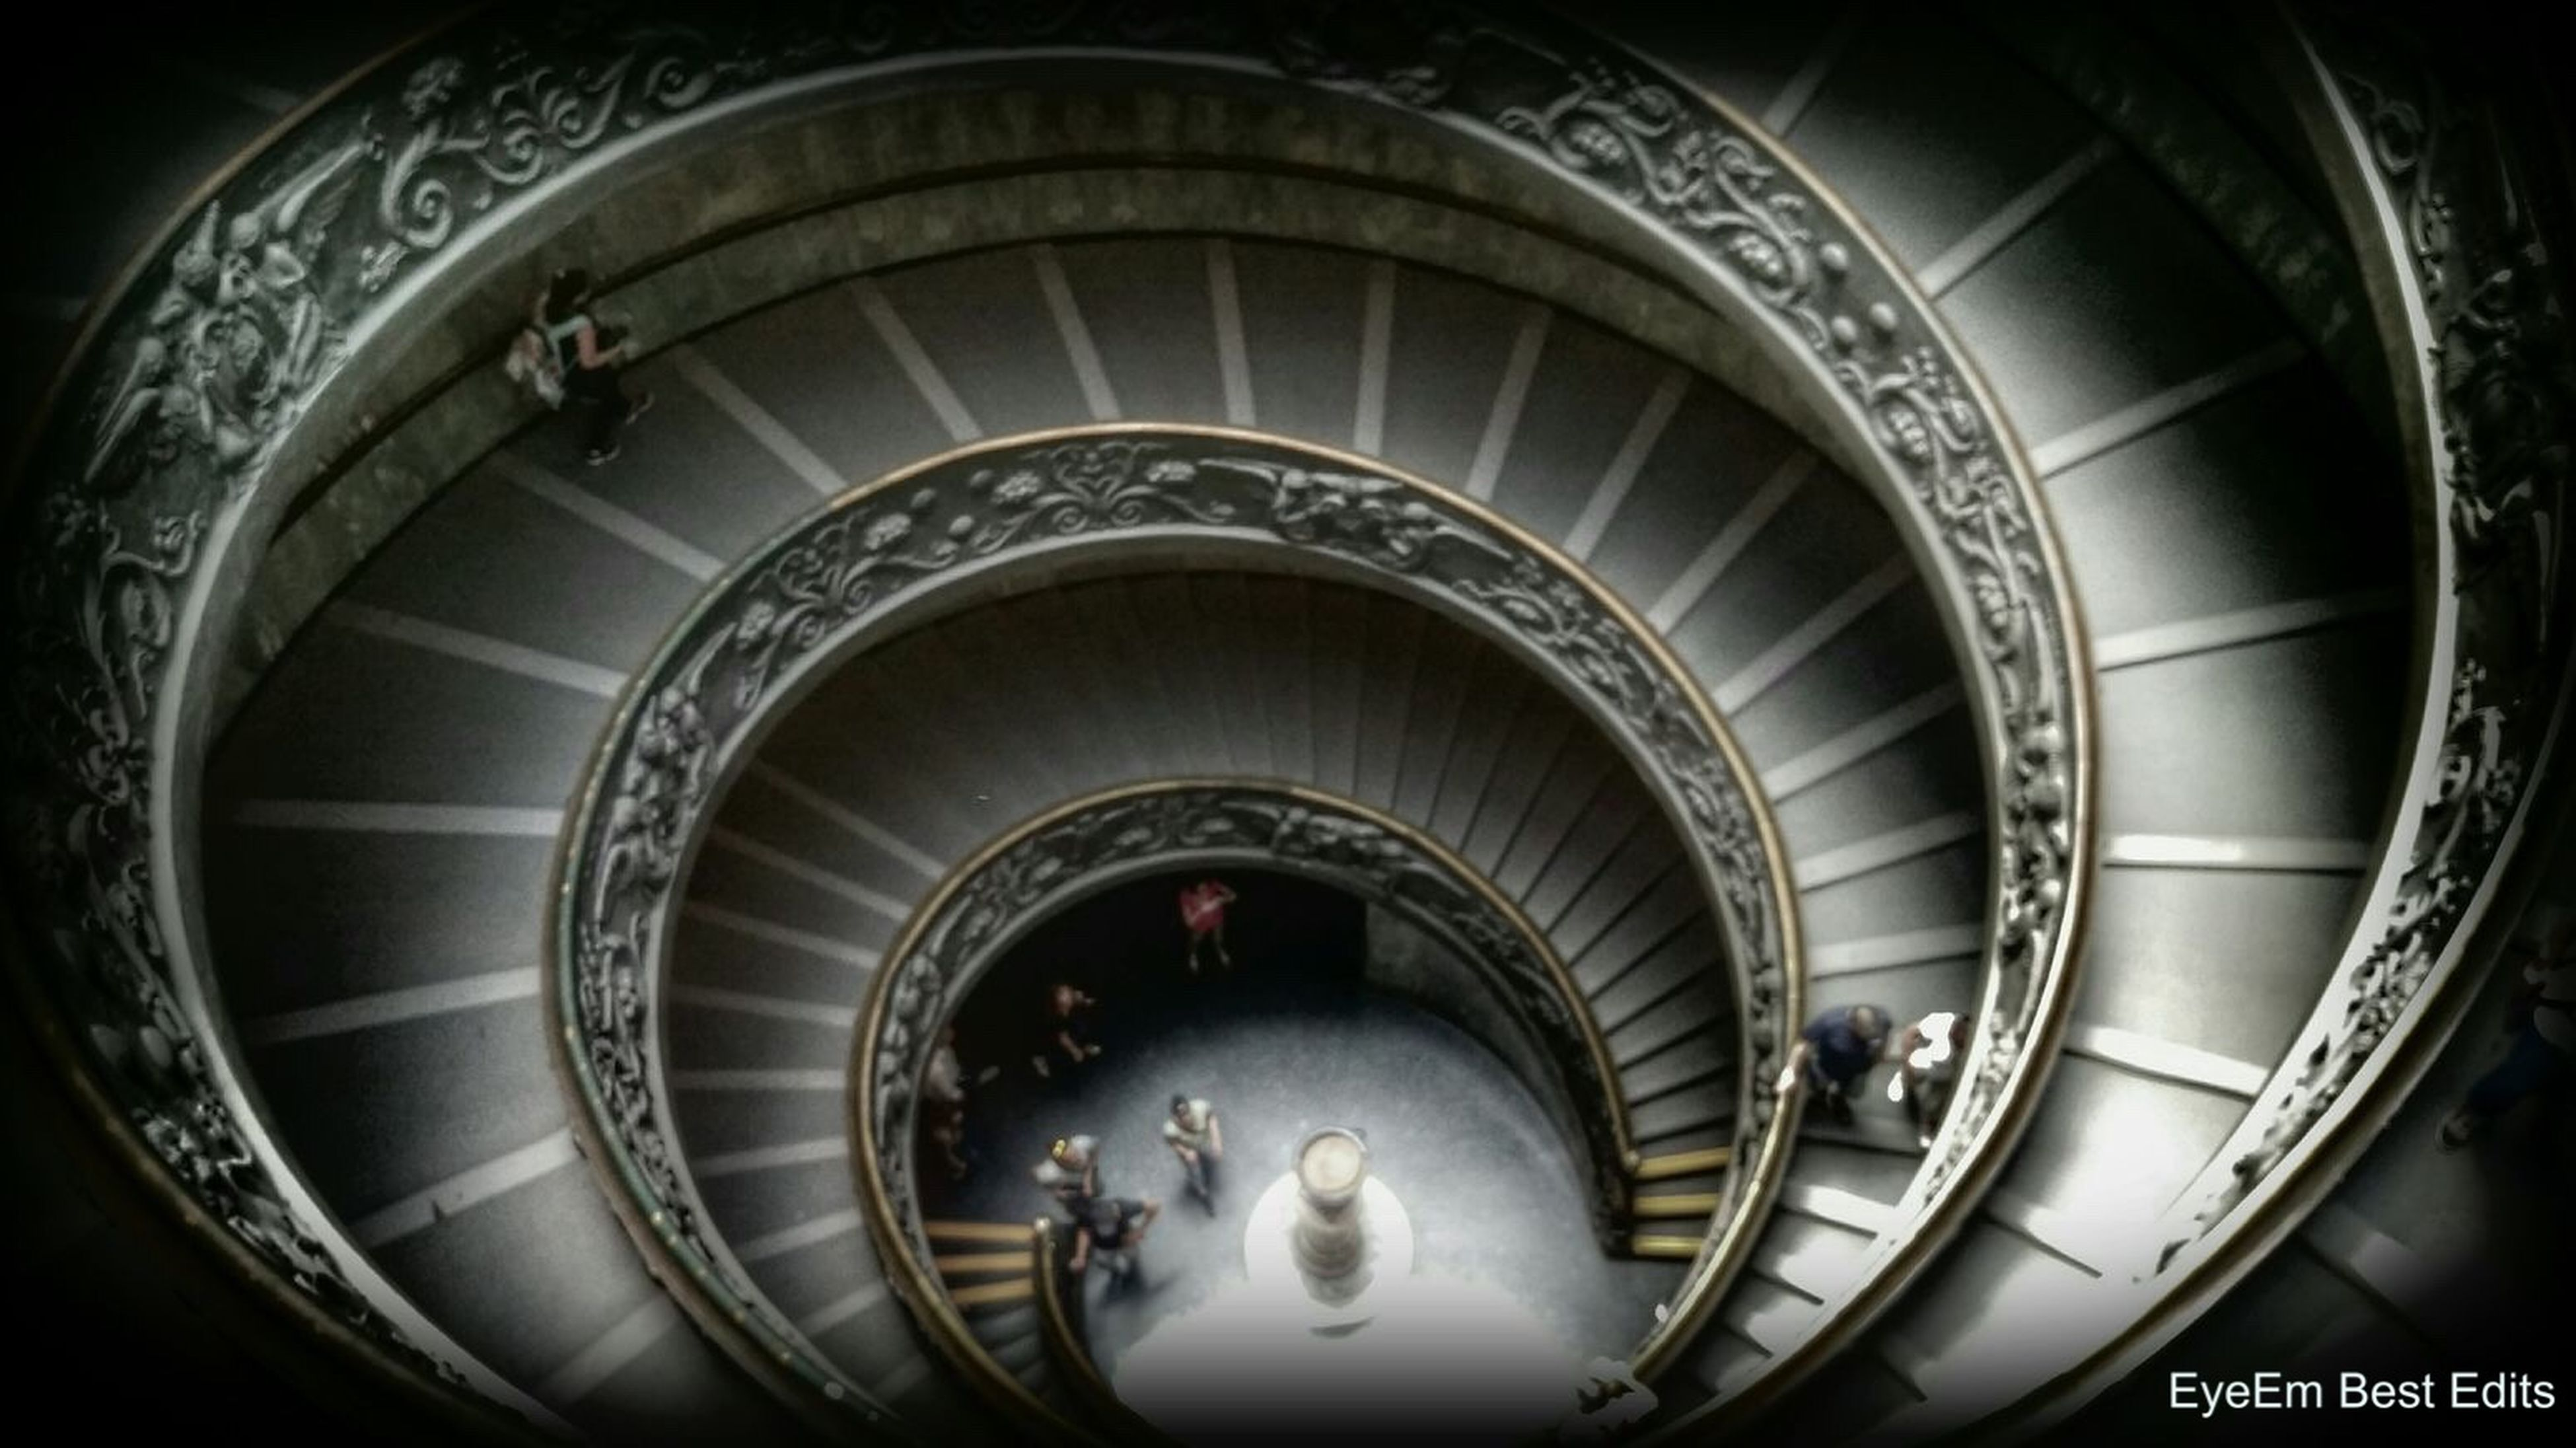 indoors, steps, steps and staircases, staircase, railing, spiral staircase, spiral, built structure, architecture, high angle view, low angle view, ceiling, escalator, arch, tunnel, pattern, men, travel, circle